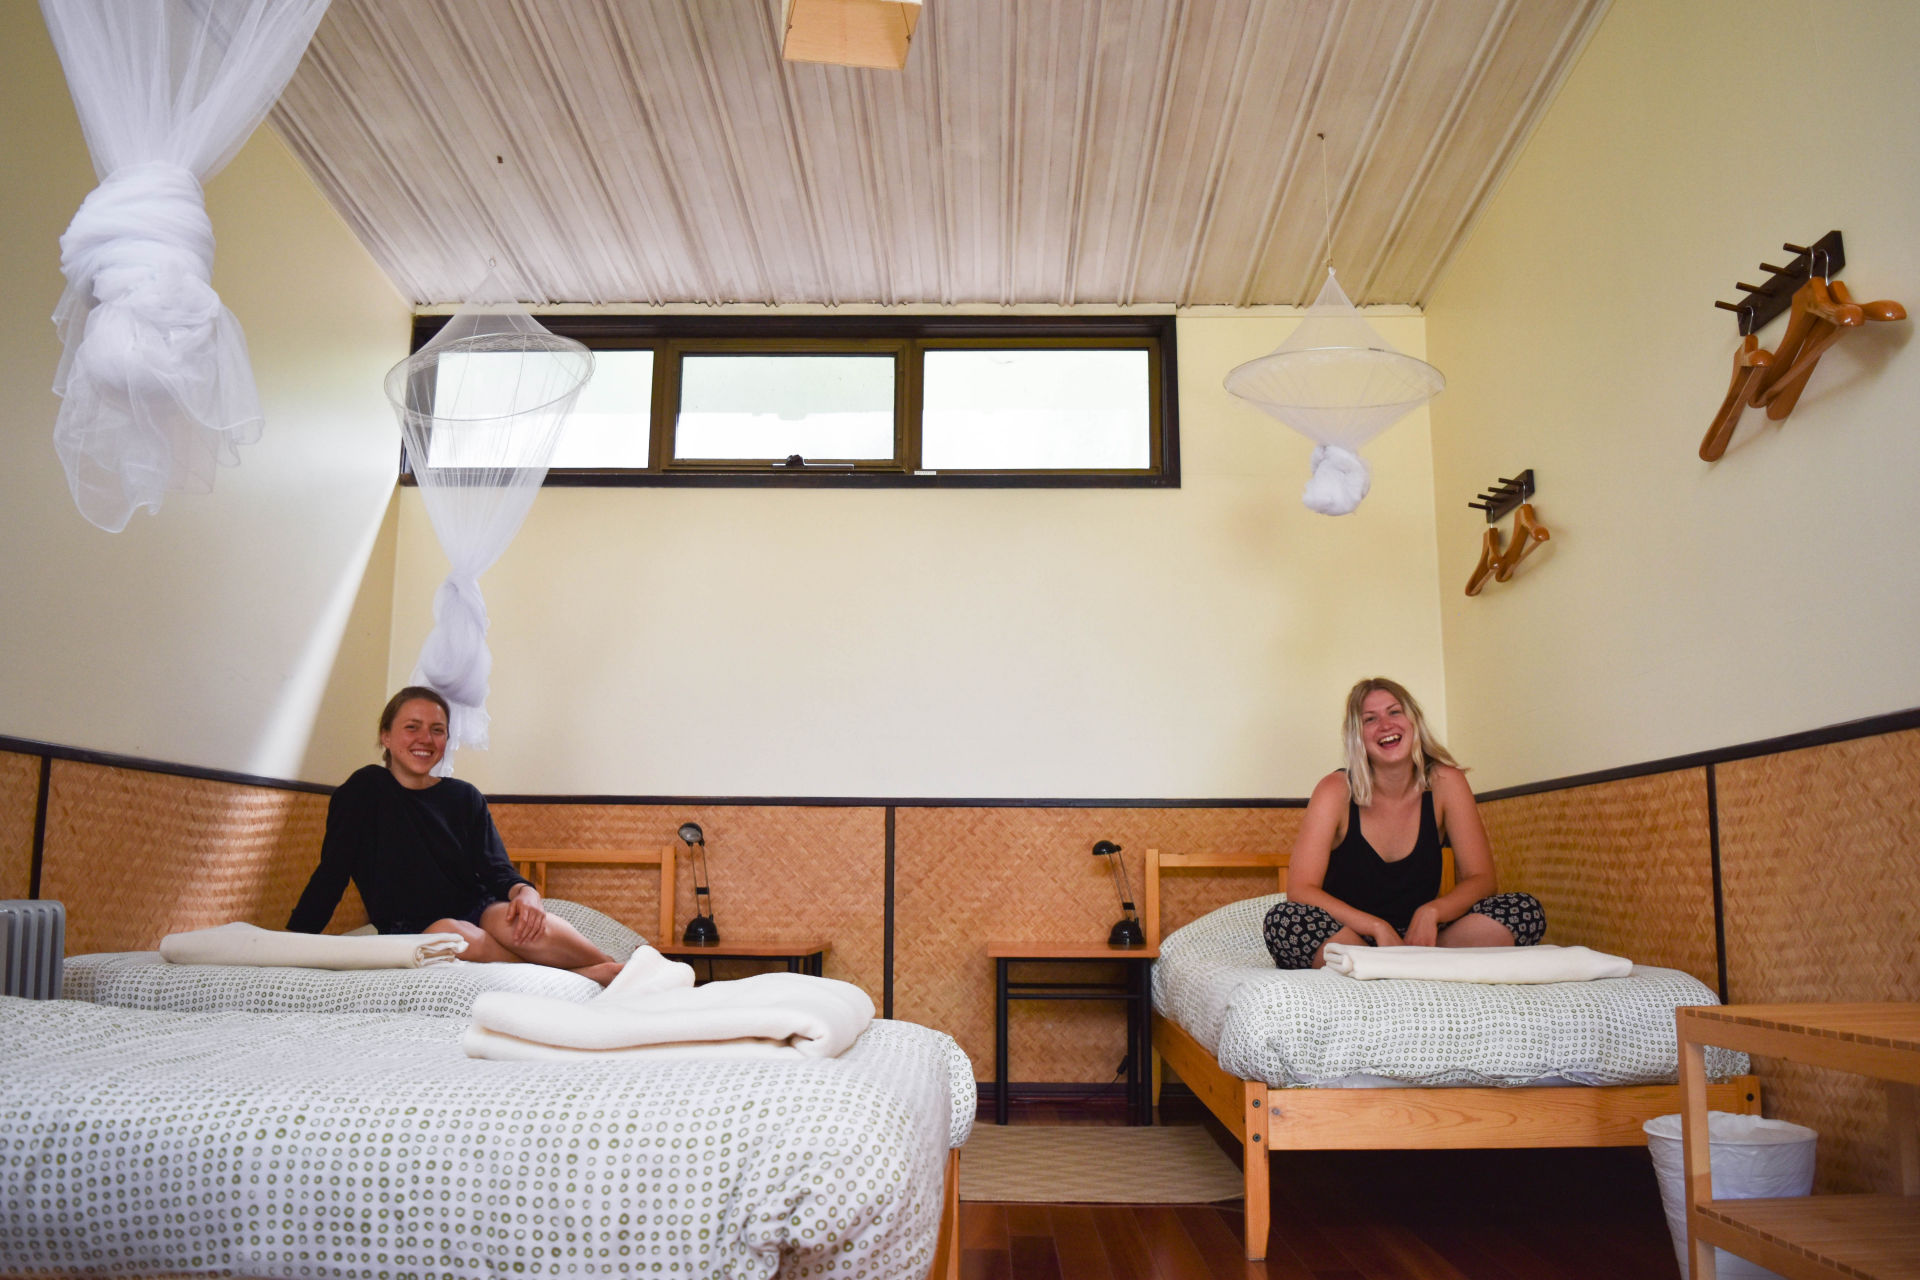 PACKAGE 4 - DORMITORY W/SHARED FACILITIES Features: 4 x Single Beds, communal bathrooms, polished wooden floors, fans + heater, free high speed WiFi, free parking. Incl. yoga classes + 3 vegan meals daily + workshops.